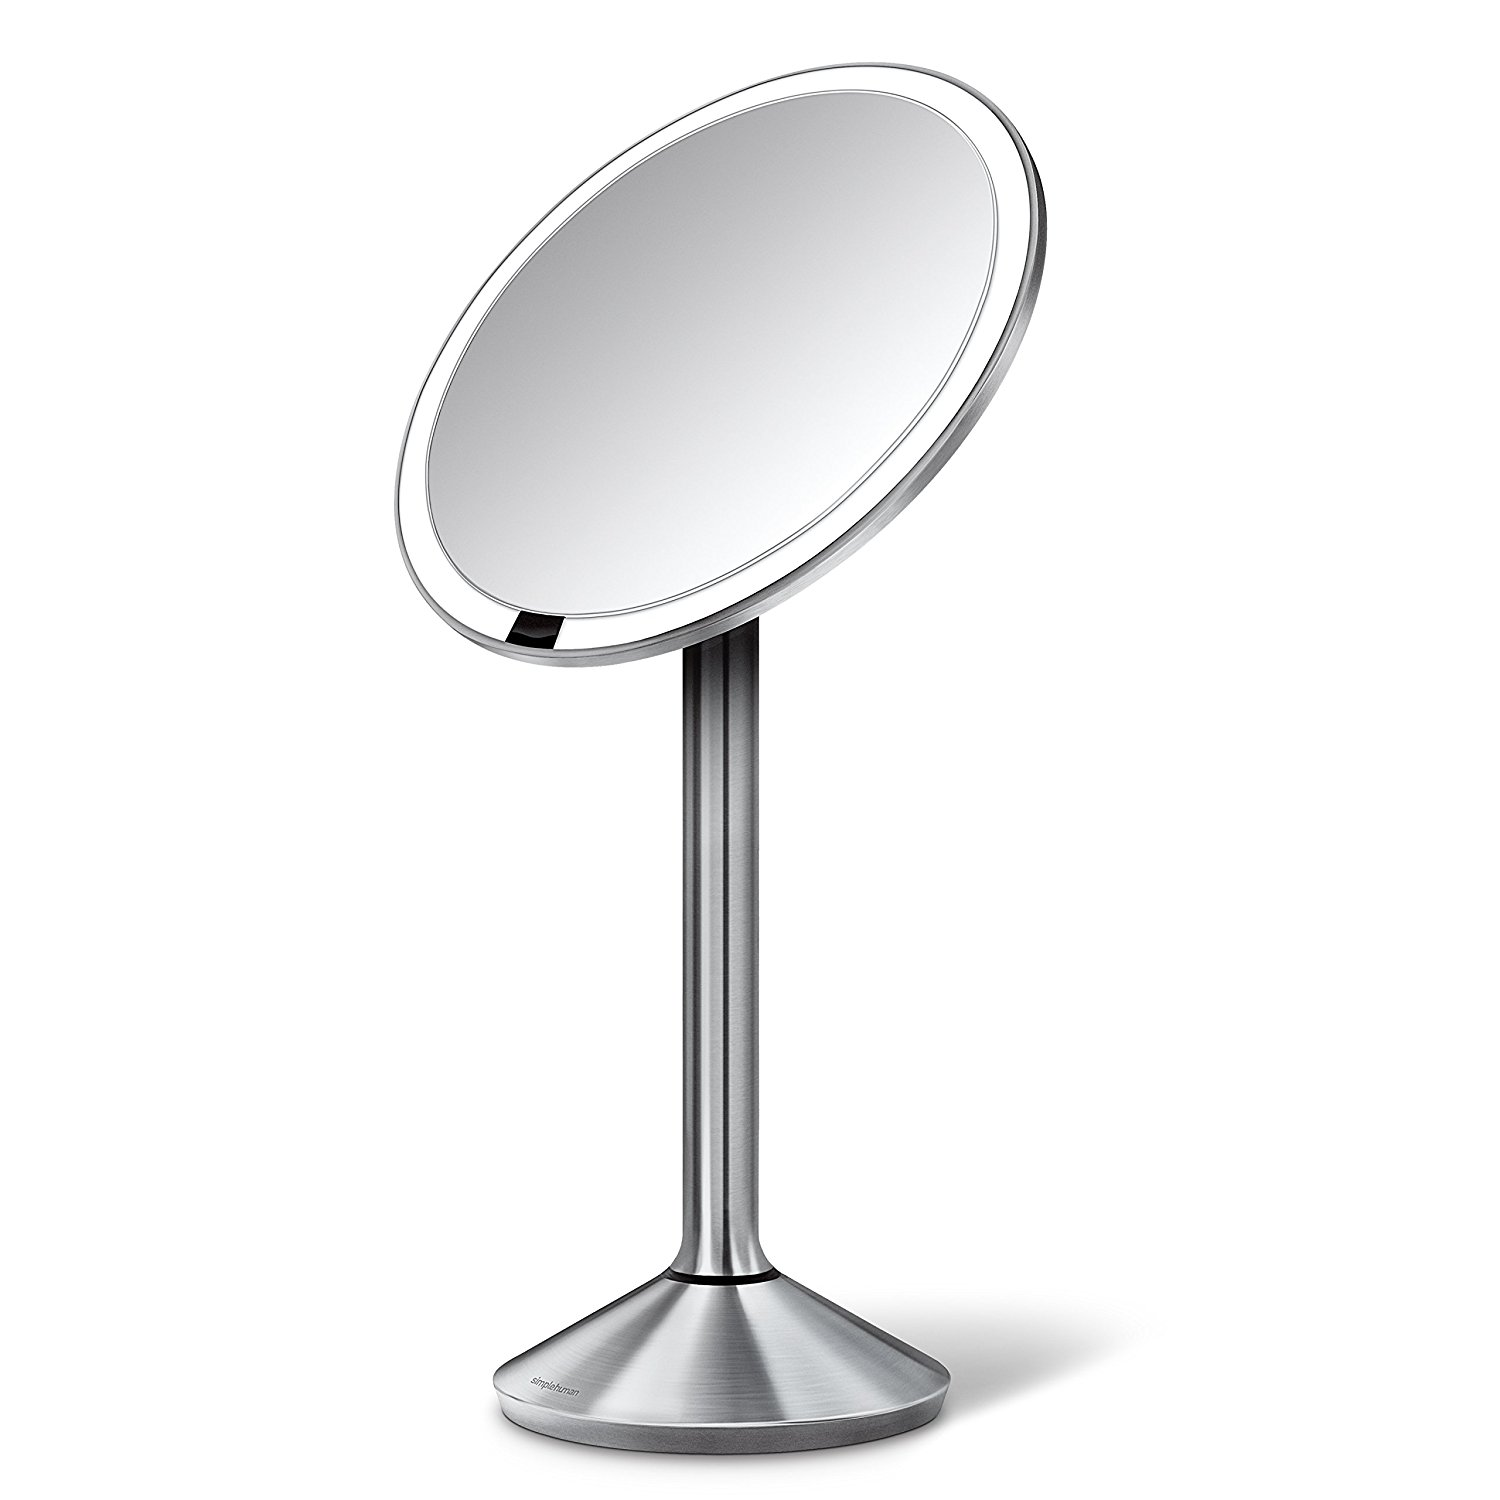 Best Lighted Makeup Mirror   Magnifying Mirror with Light   10x Magnifying Mirror. Bedroom  Best Lighted Makeup Mirror   Light Up Vanity   Vanity